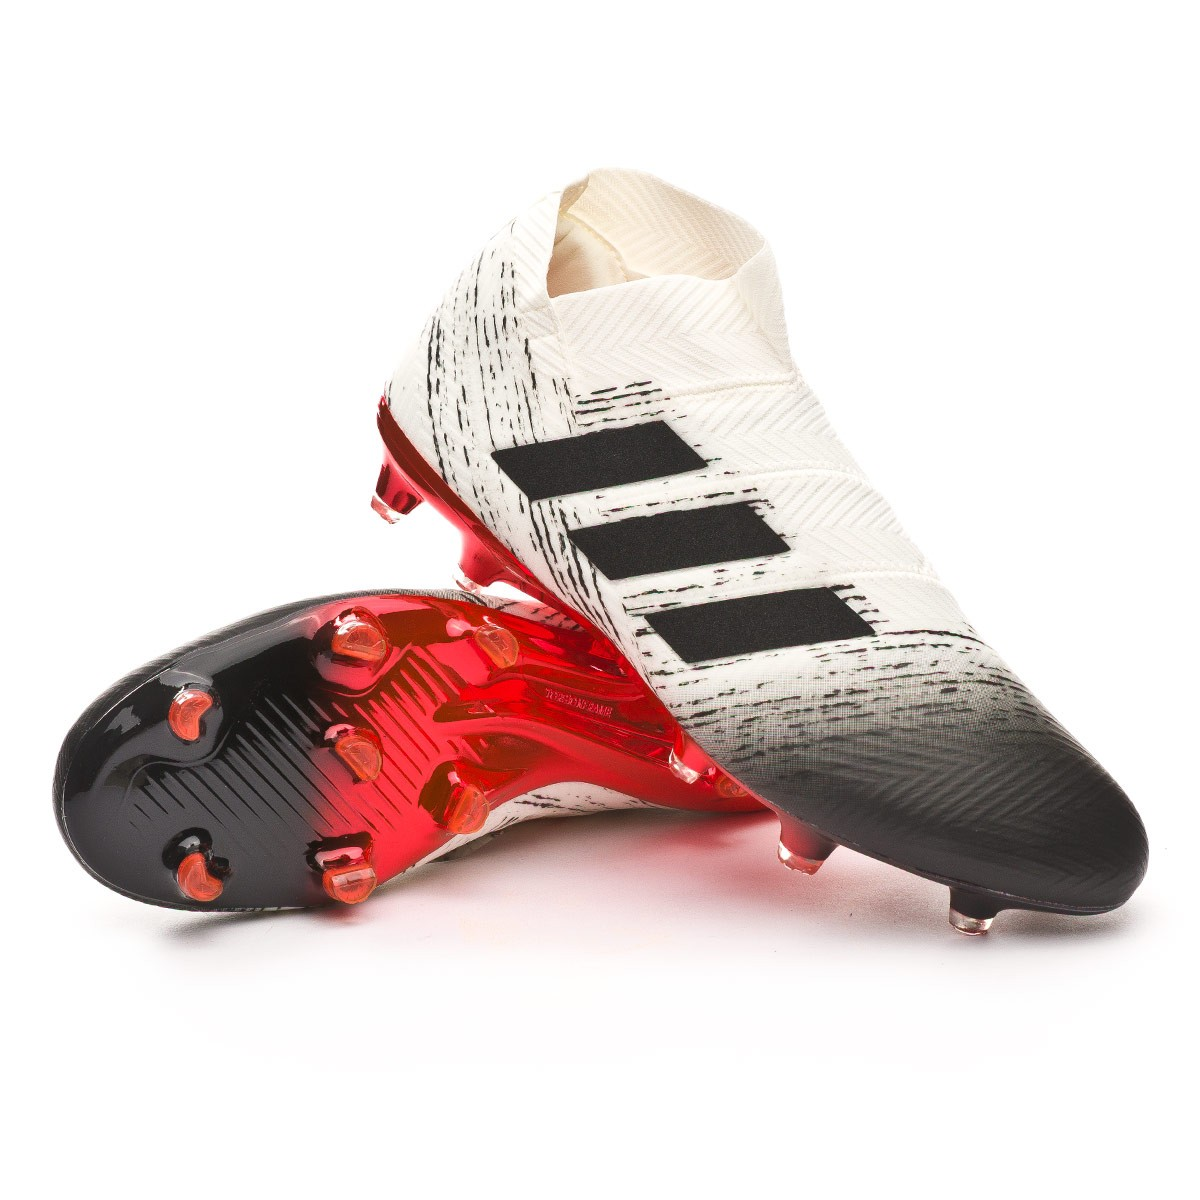 a53e64ab162016 Boot adidas Nemeziz 18+ FG Off white-Core black-Active red ...